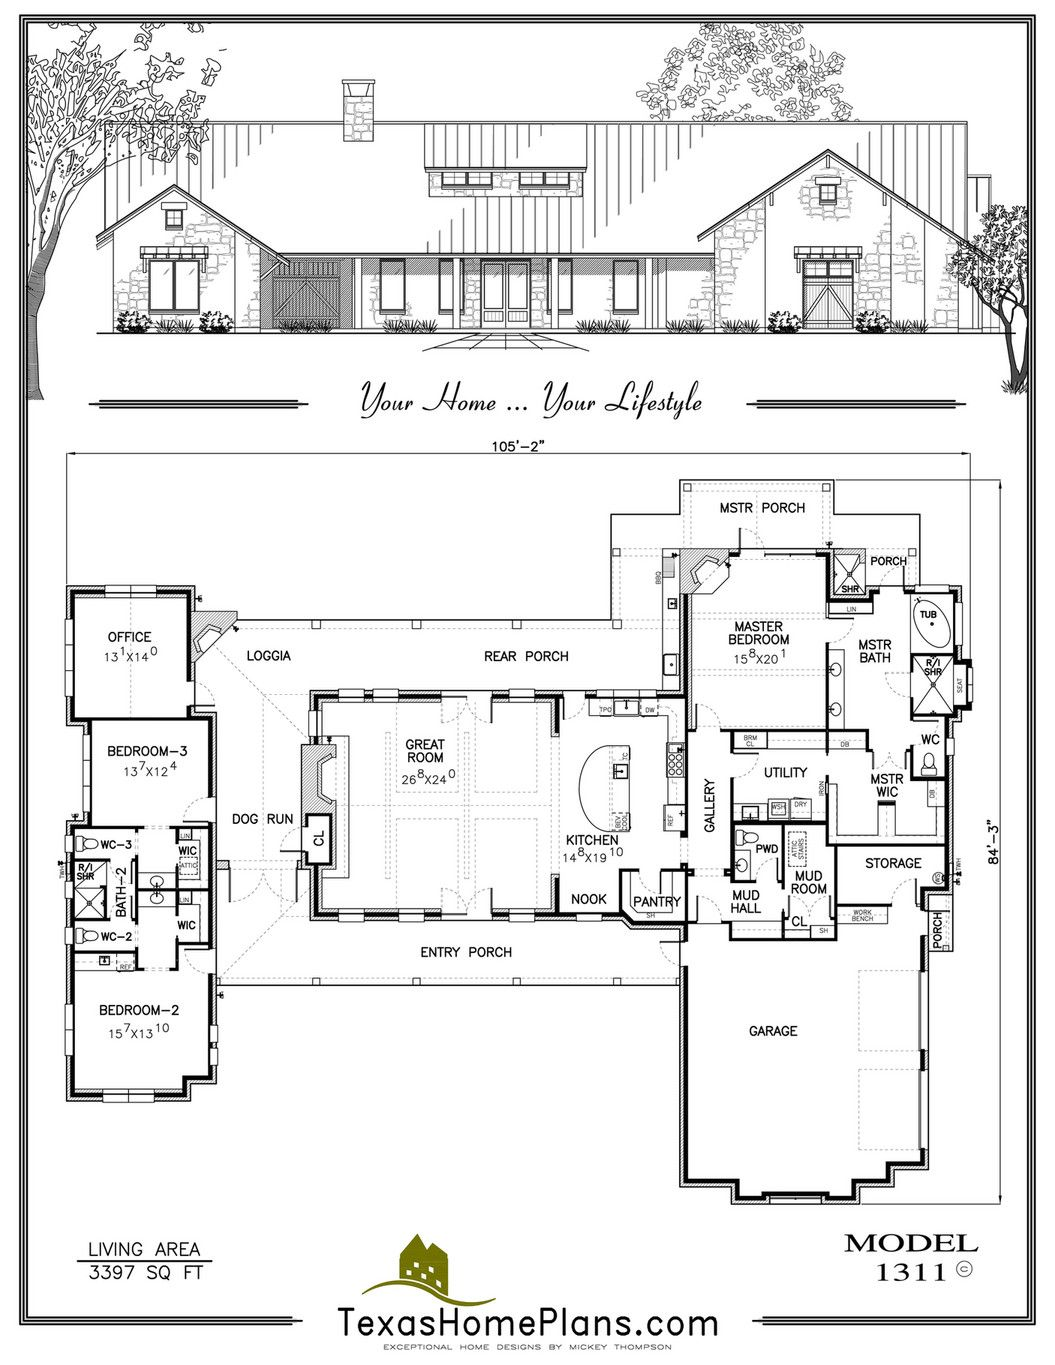 Texas Home Plans Texas Farm Homes Page 114 115 New House Plans Home Design Floor Plans Texas House Plans